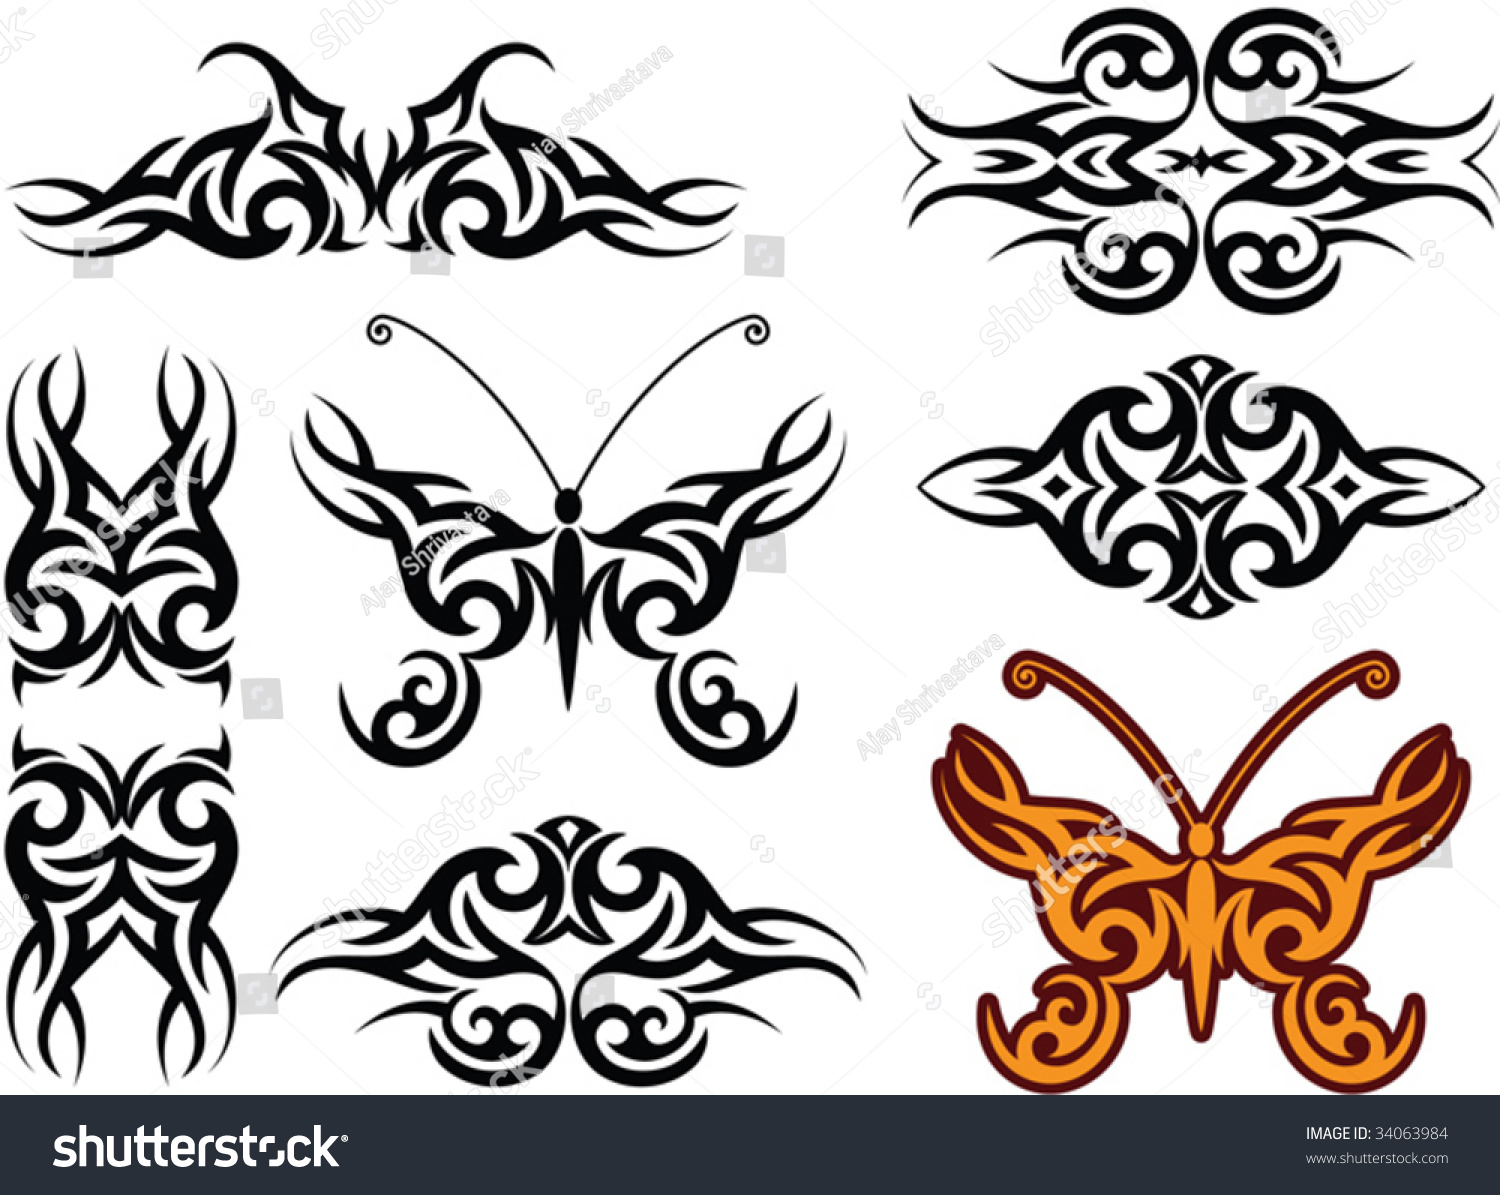 vector tribal tattoo armband butterfly 34063984 shutterstock. Black Bedroom Furniture Sets. Home Design Ideas